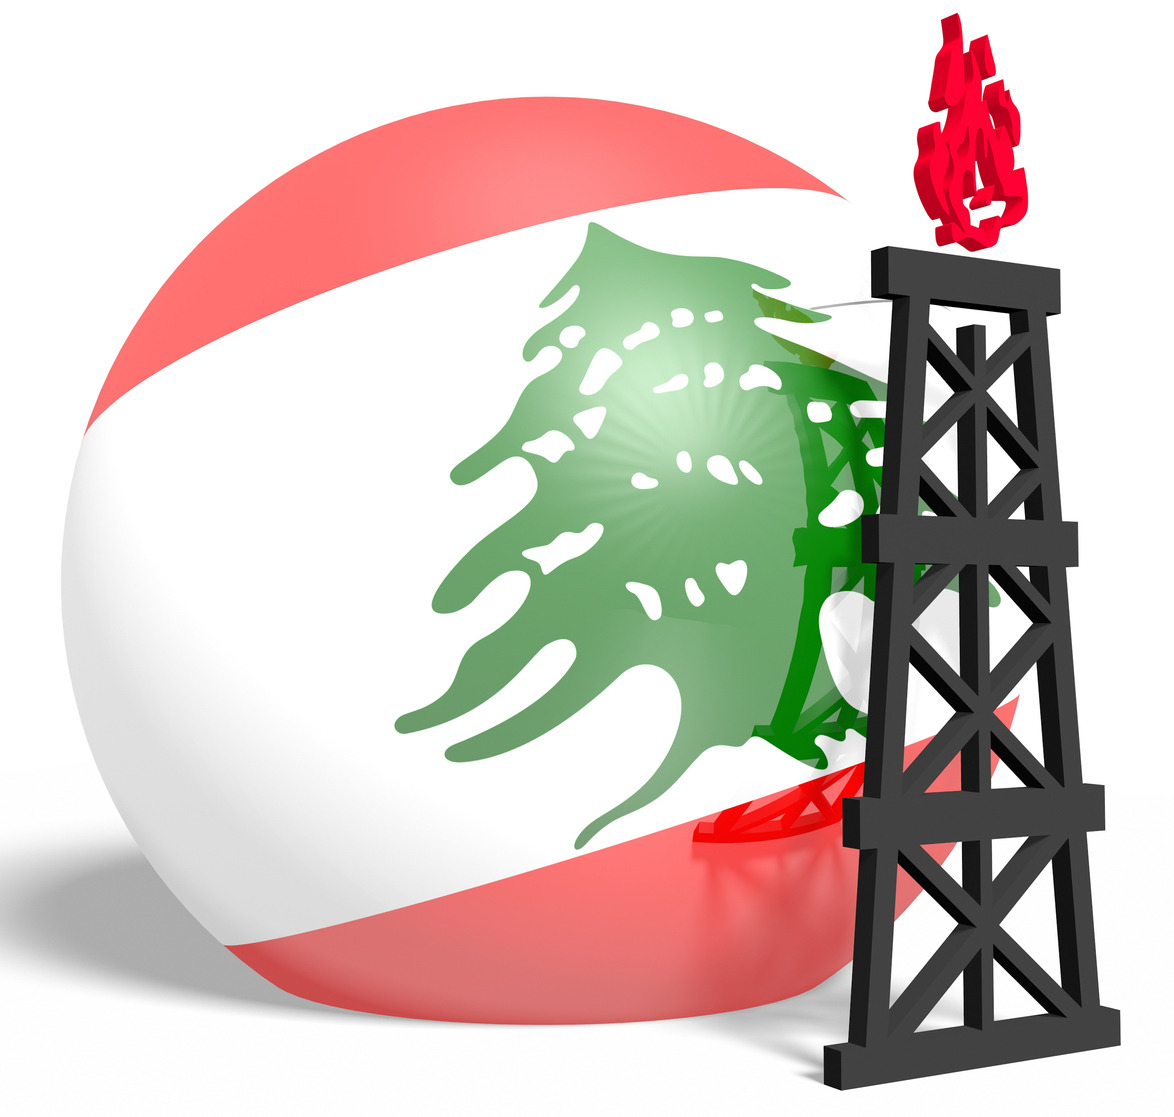 Reflected sphere with gas rig icon, textured by Lebanon flag